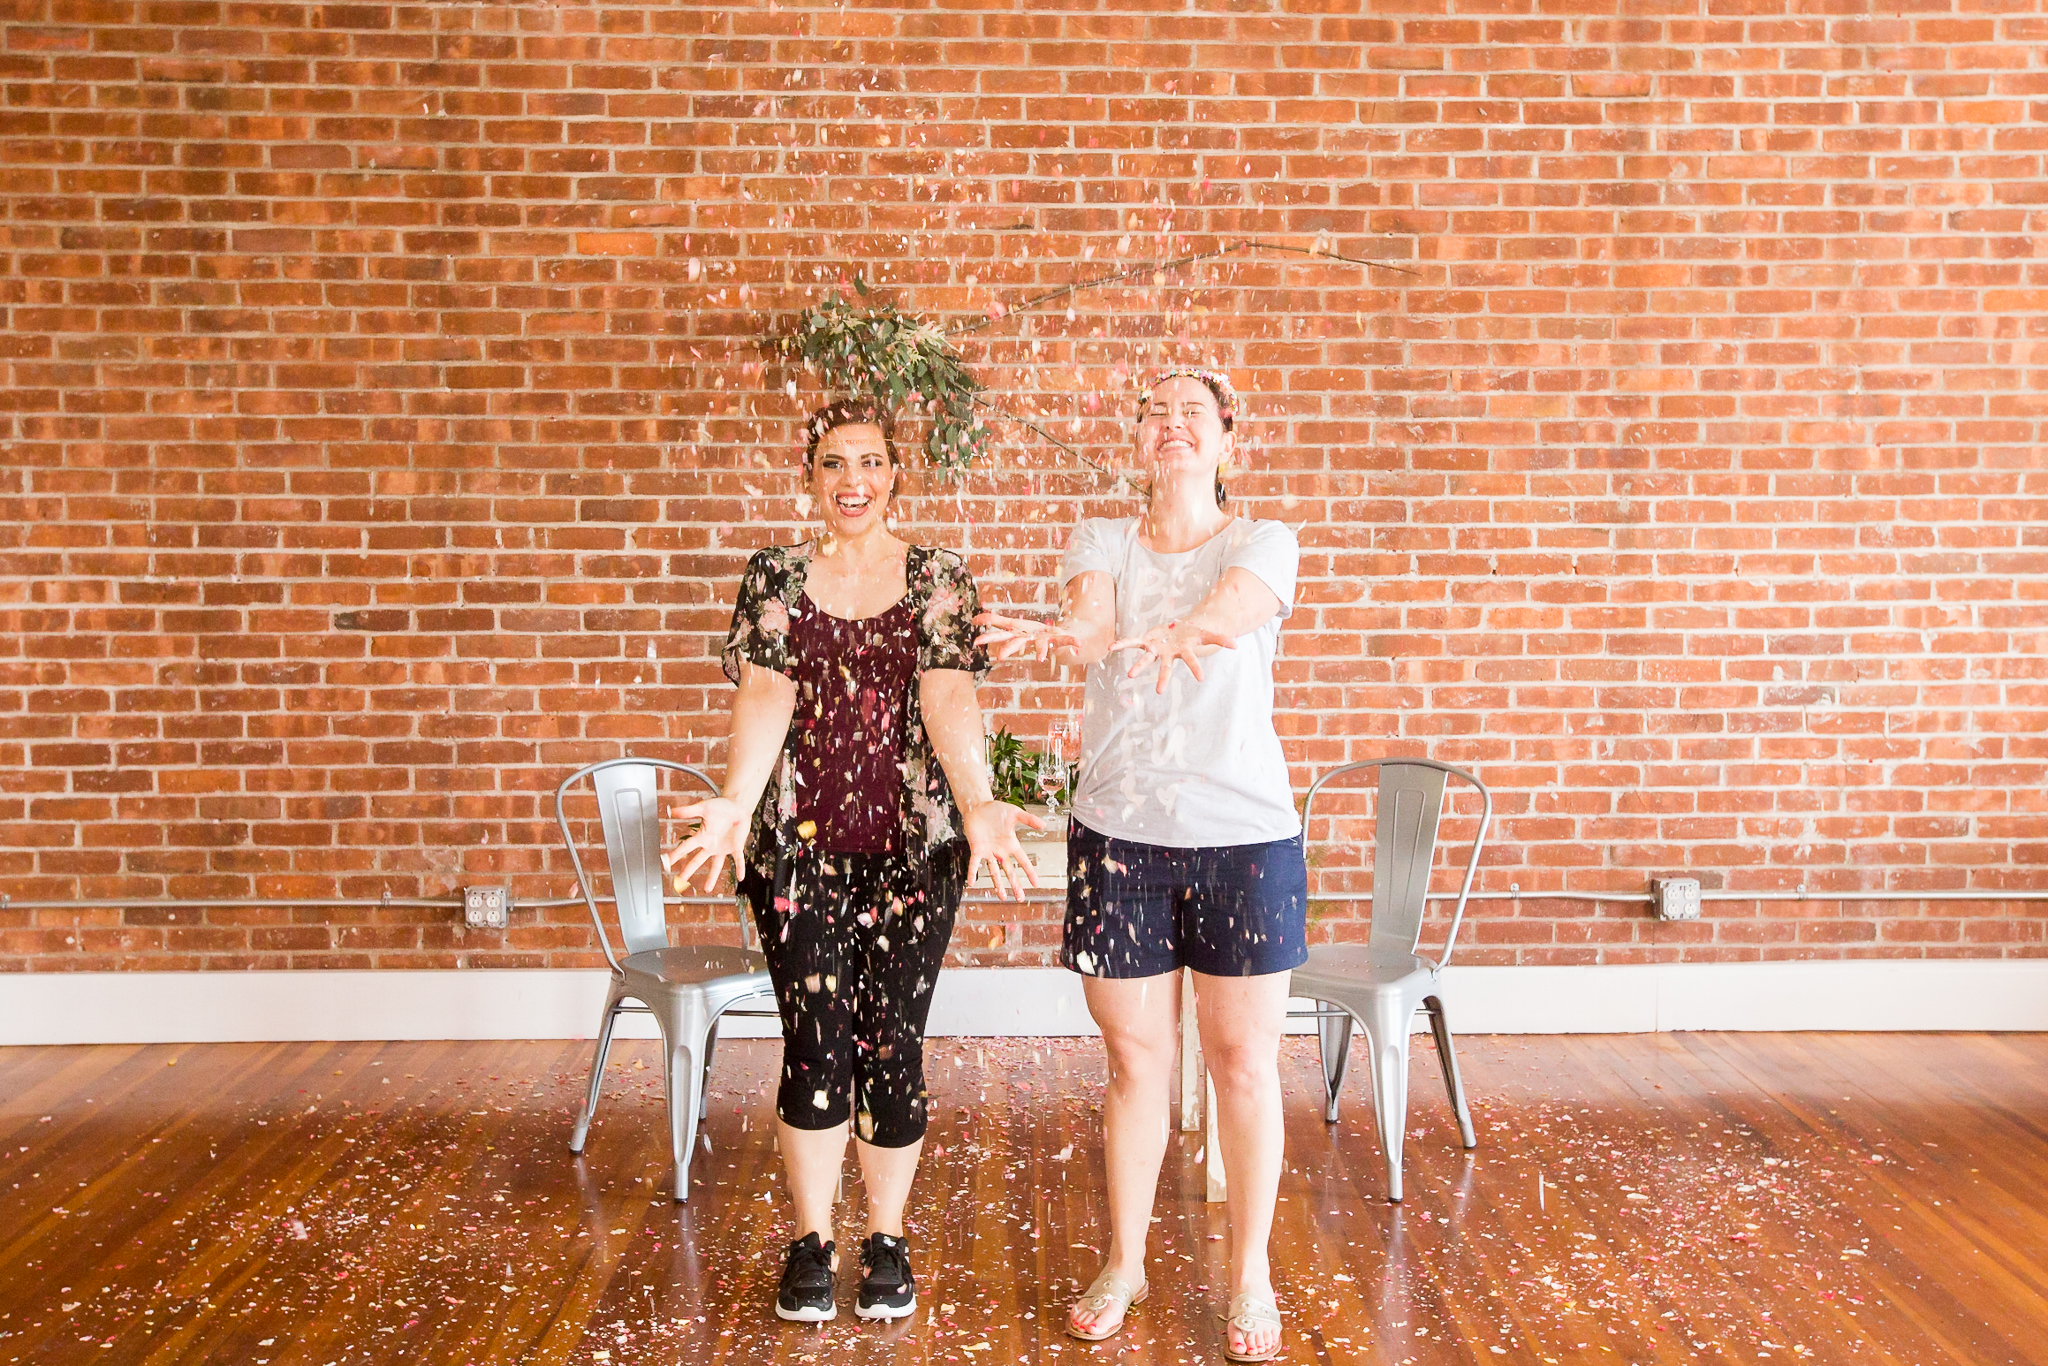 You can see why we had so much fun at the styled shoot! Confetti throwing all day? Yes please!  Jess of The Confetti Bar on the left, and Barbara of AvantGarde Design on the right.